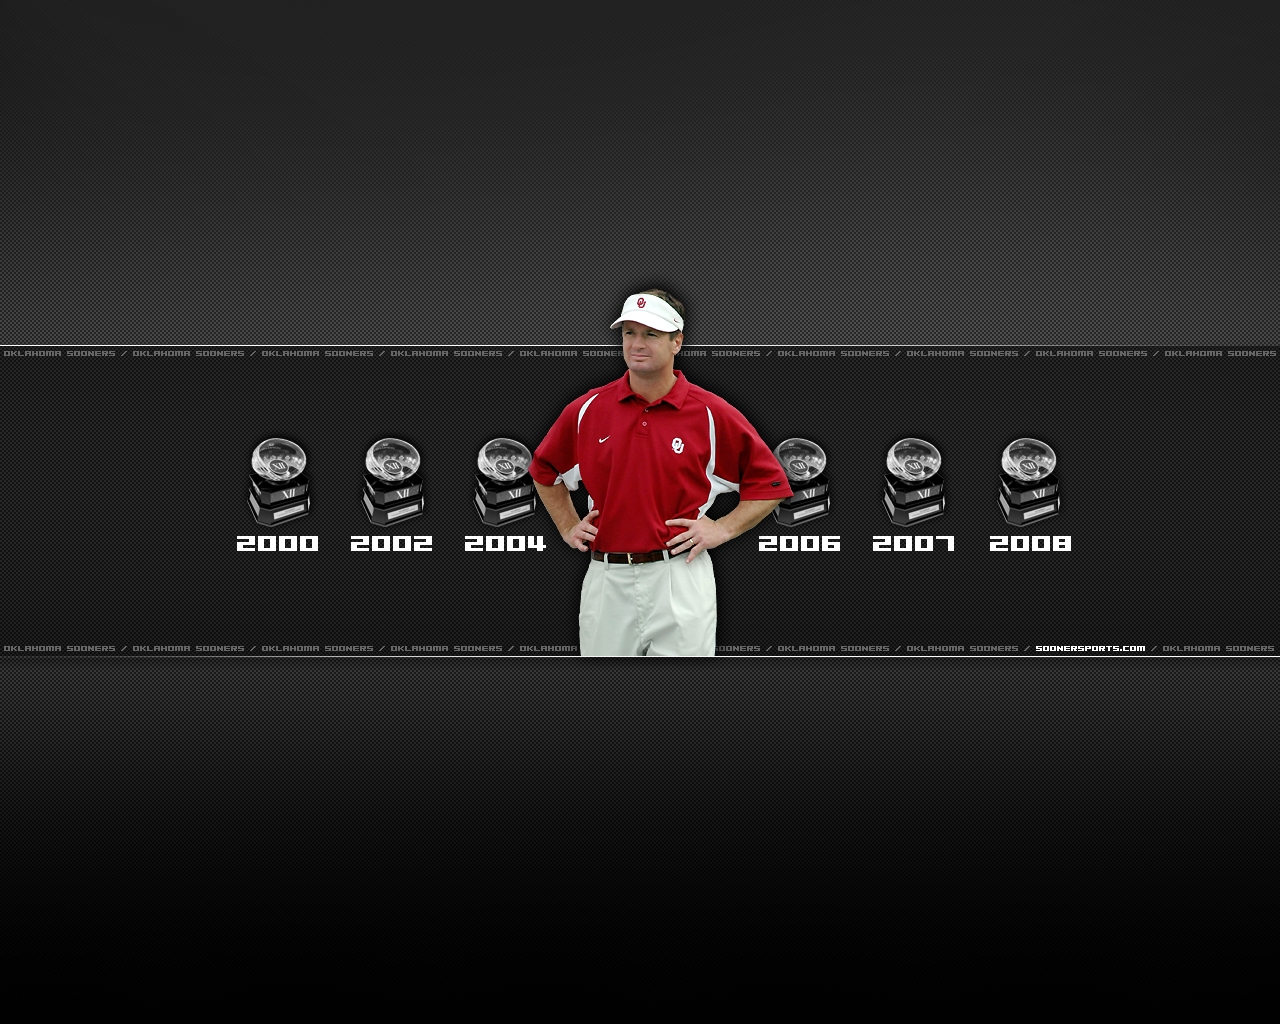 1280x1024 Oklahoma Sooners   Bob Stoops Wallpaper Download 1280x1024